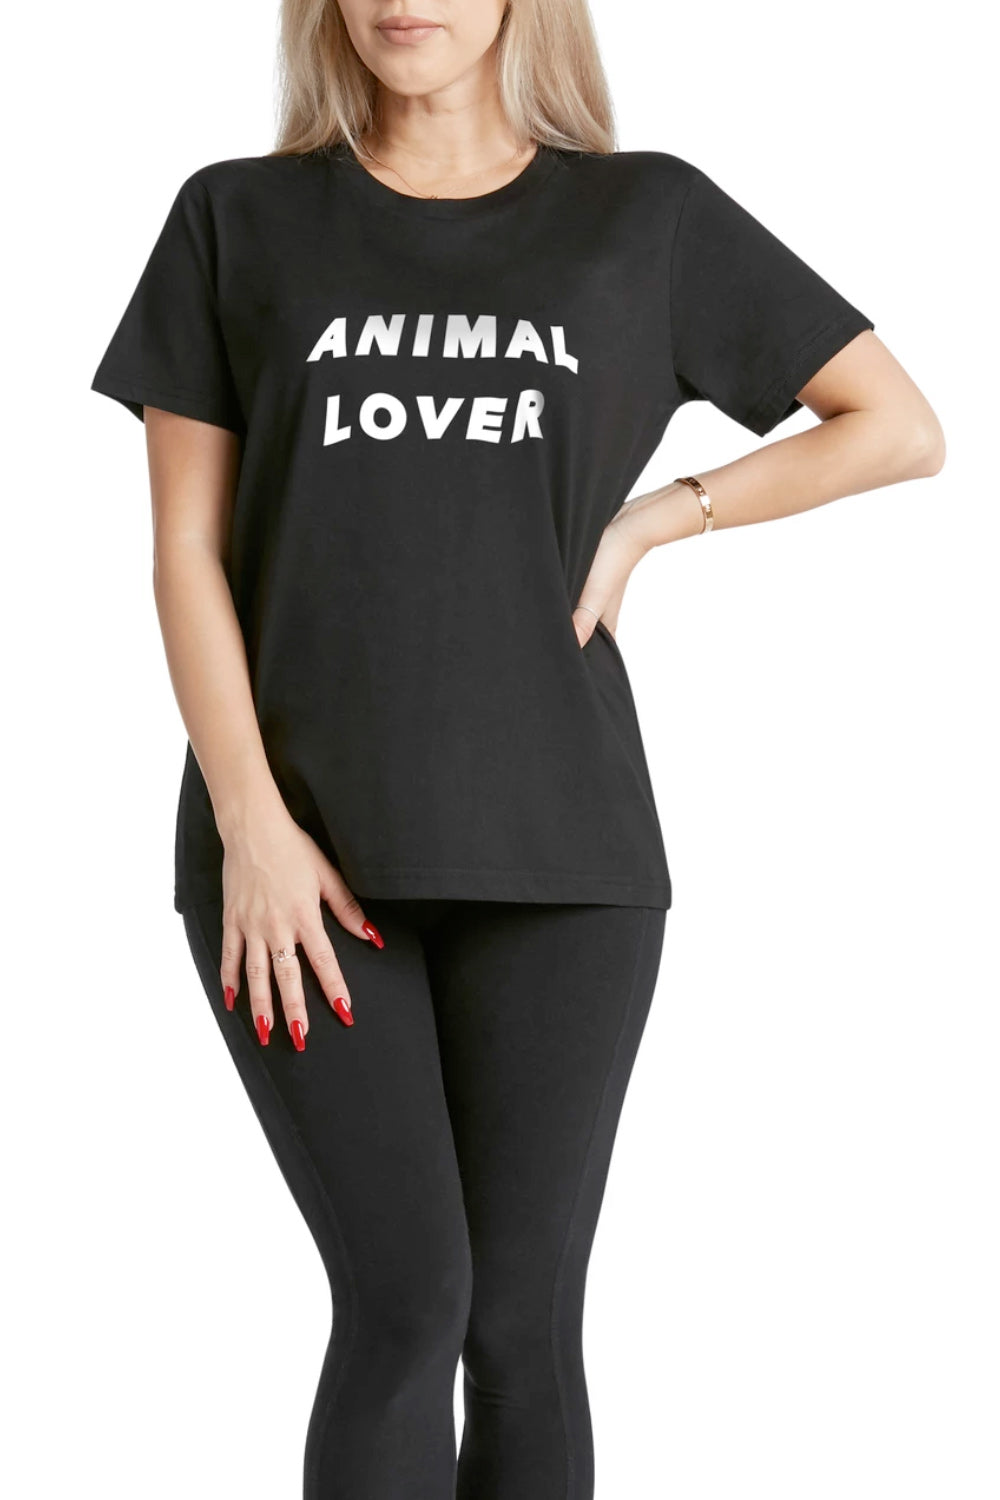 CLASSIC TEE - Animal Lover